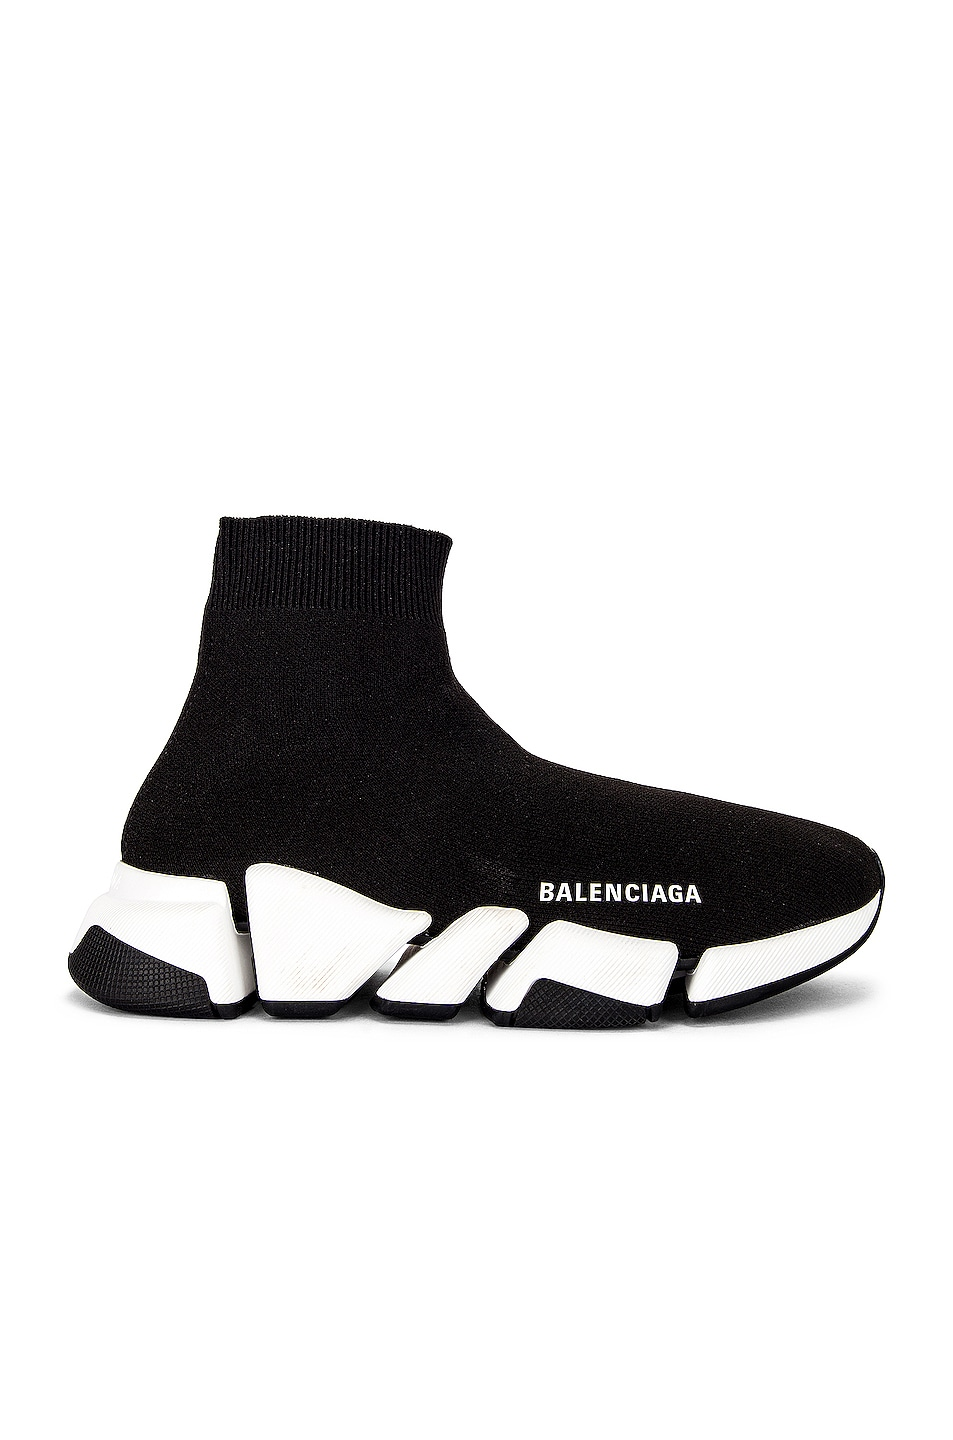 Image 1 of Balenciaga Speed 2.0 LT Sneakers in Black & White